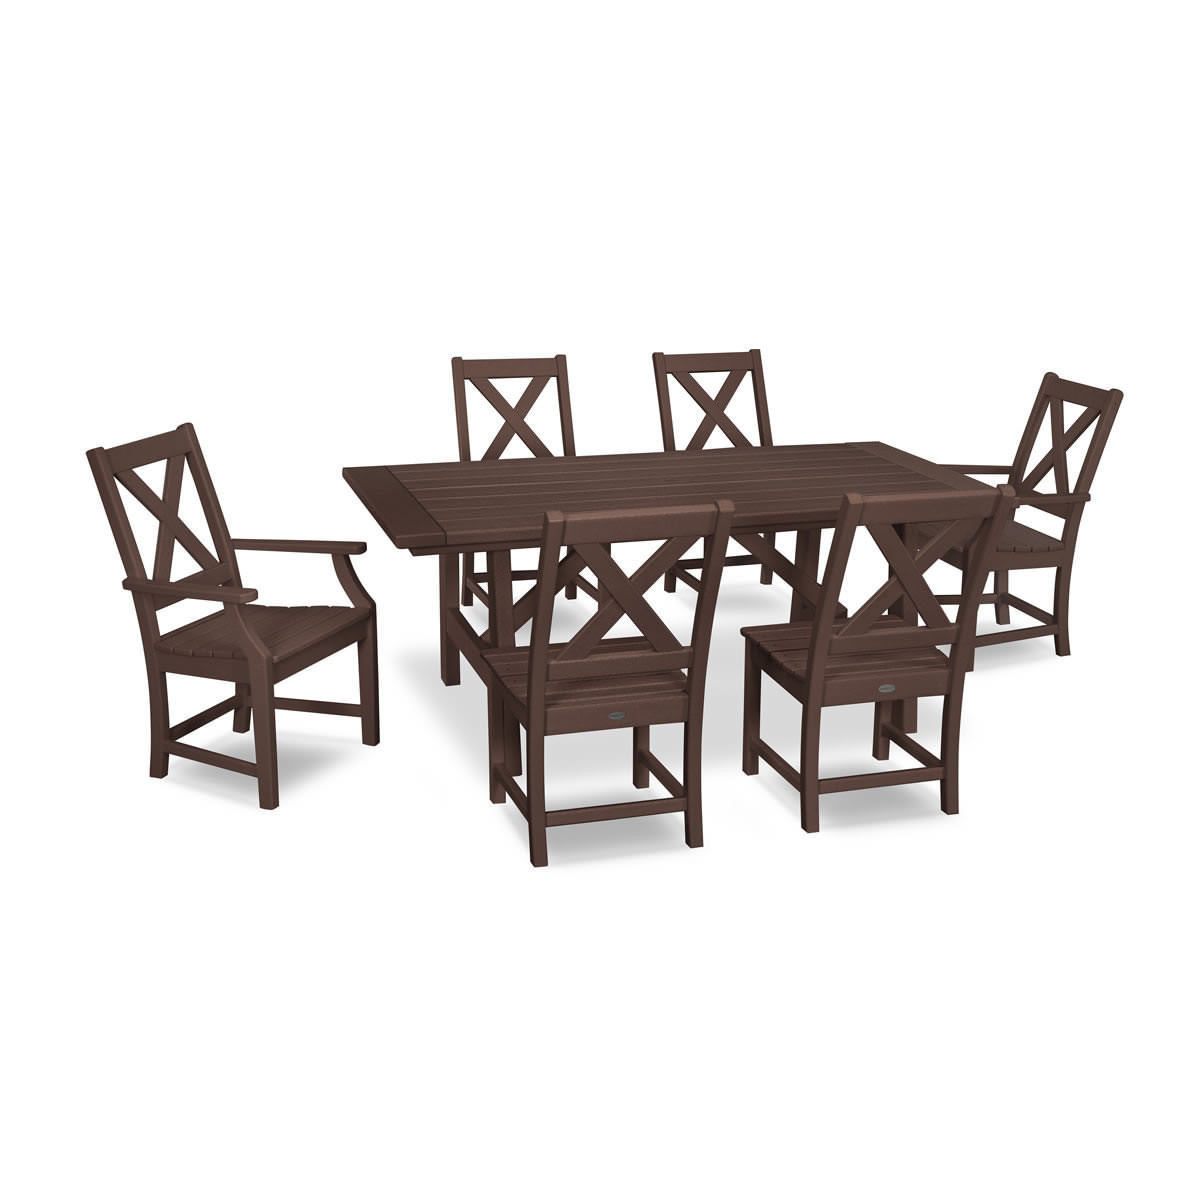 Polywood Braxton 7 Piece Rustic Farmhouse Dining Set Polywood Braxton Polywood Outdoor Furniture Collections